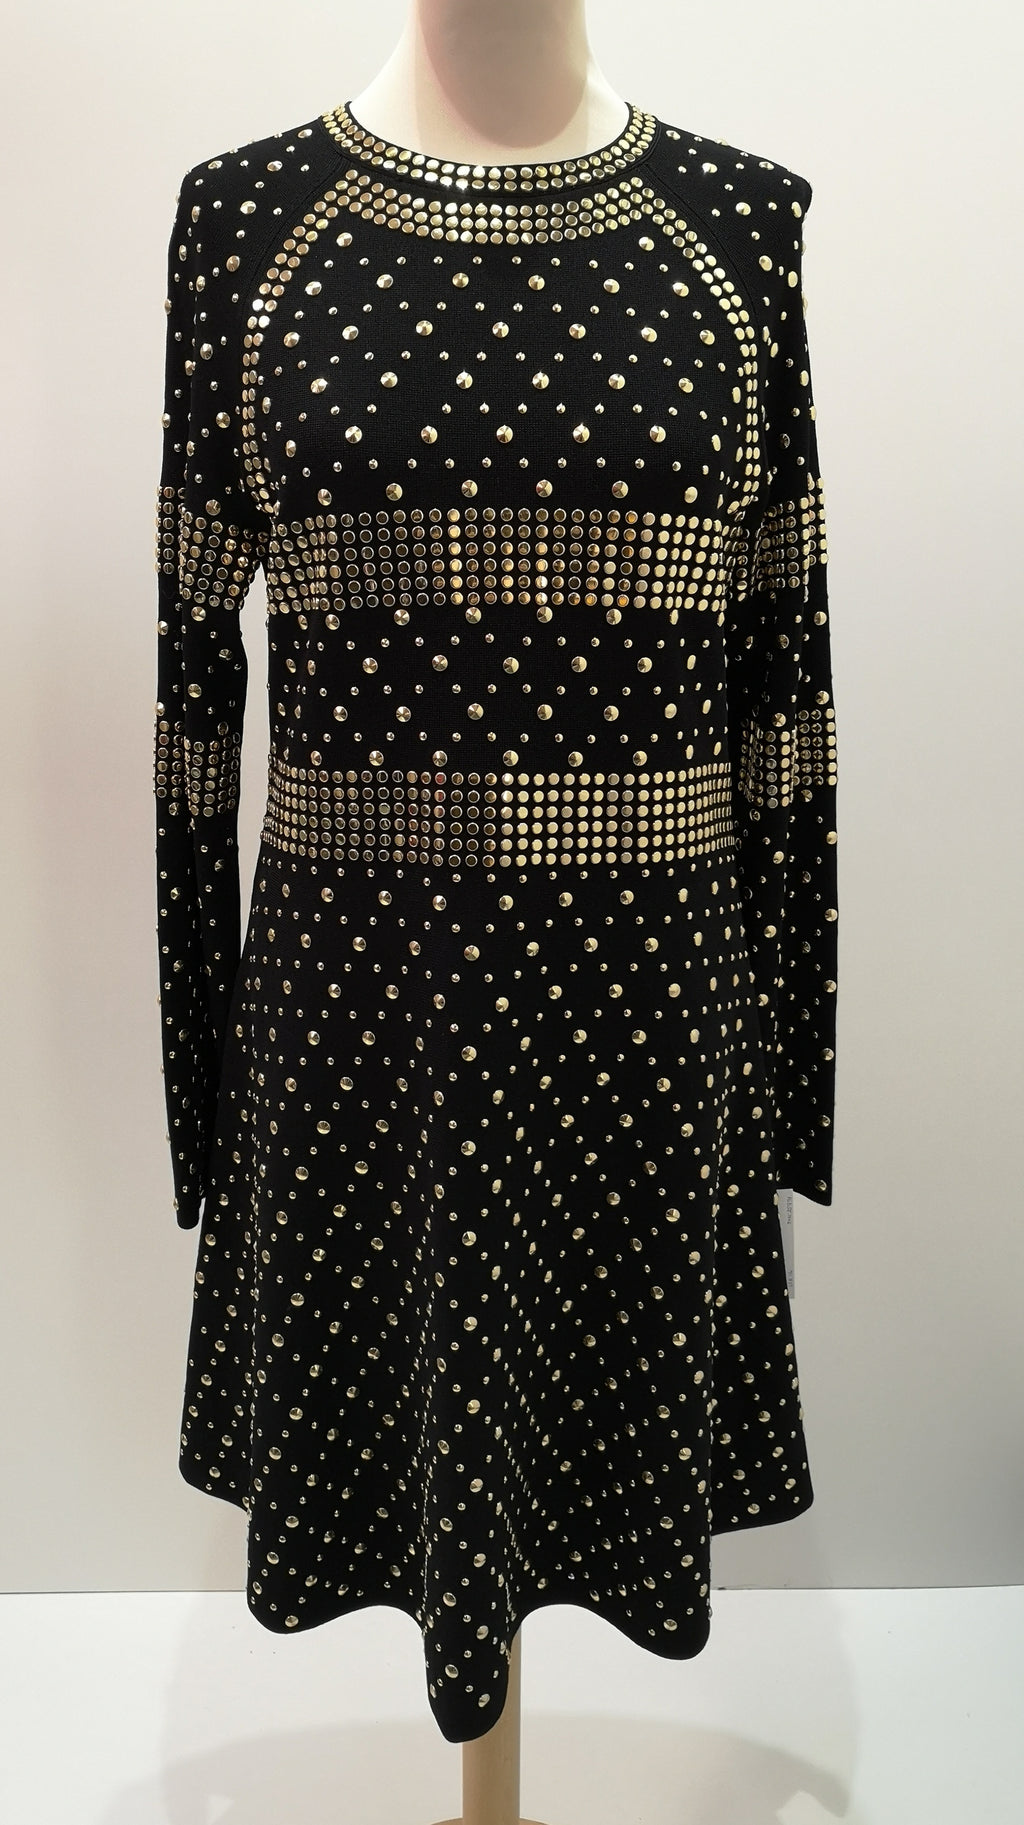 Closet Triona McCarthy - Michael Kors Dress